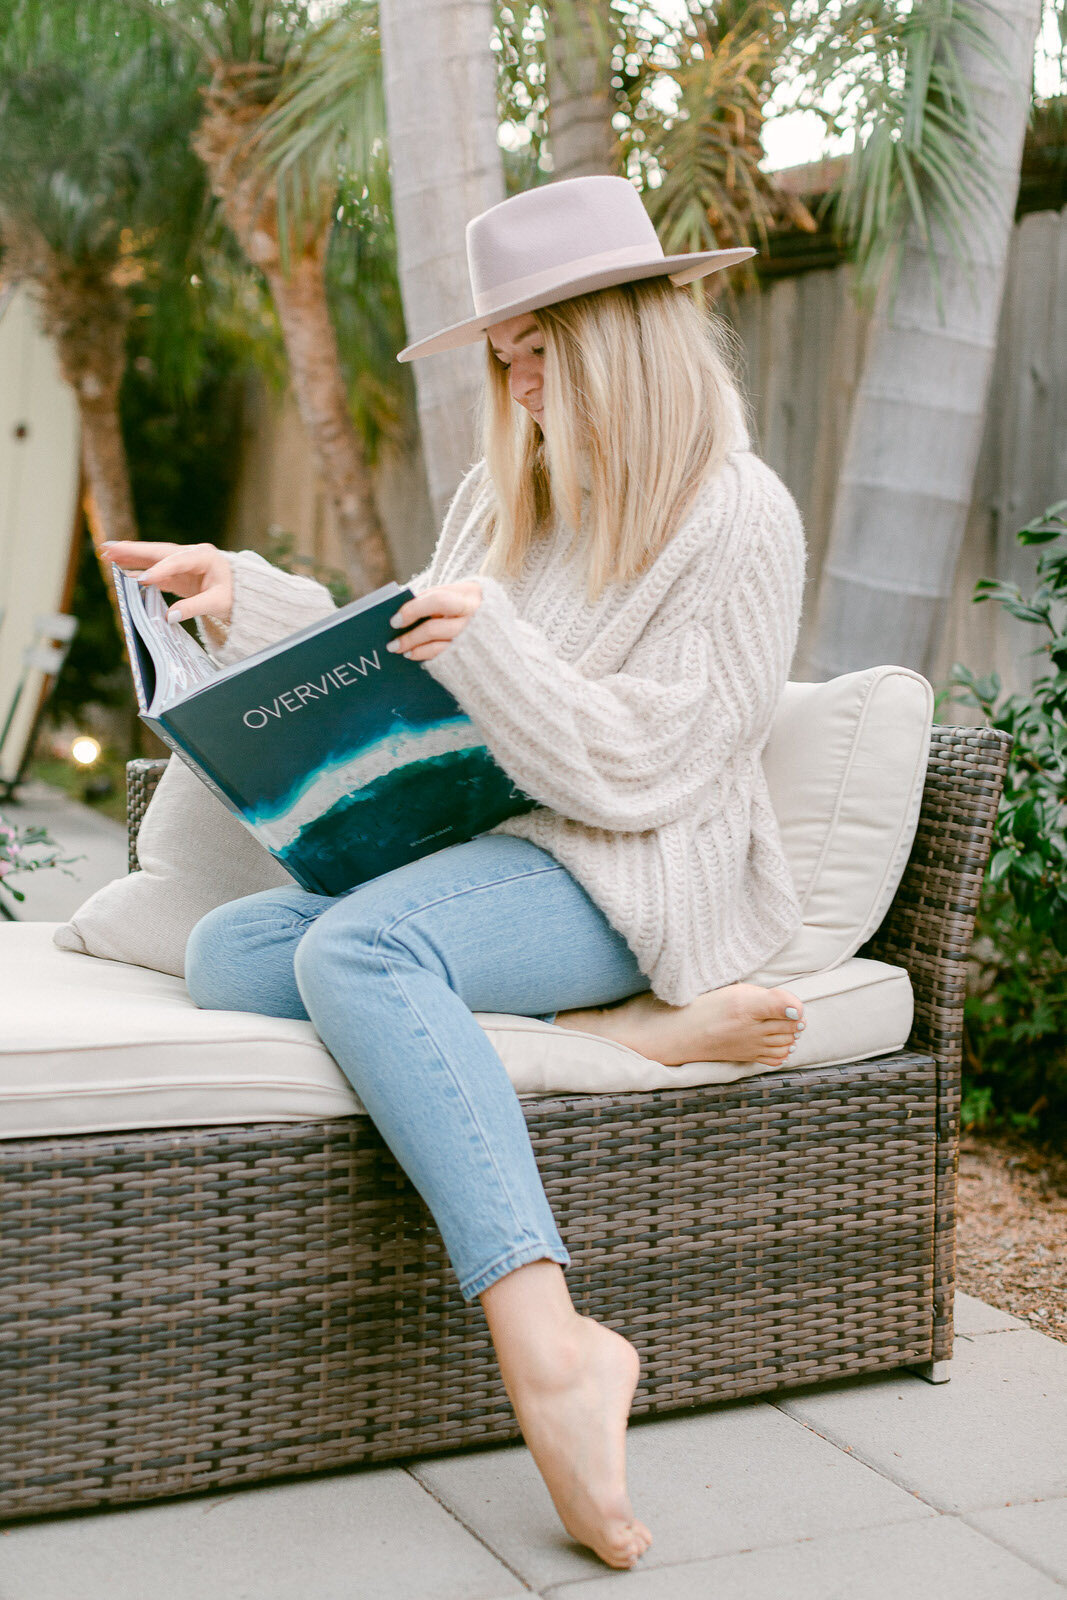 blonde girl reading surfing book on patio